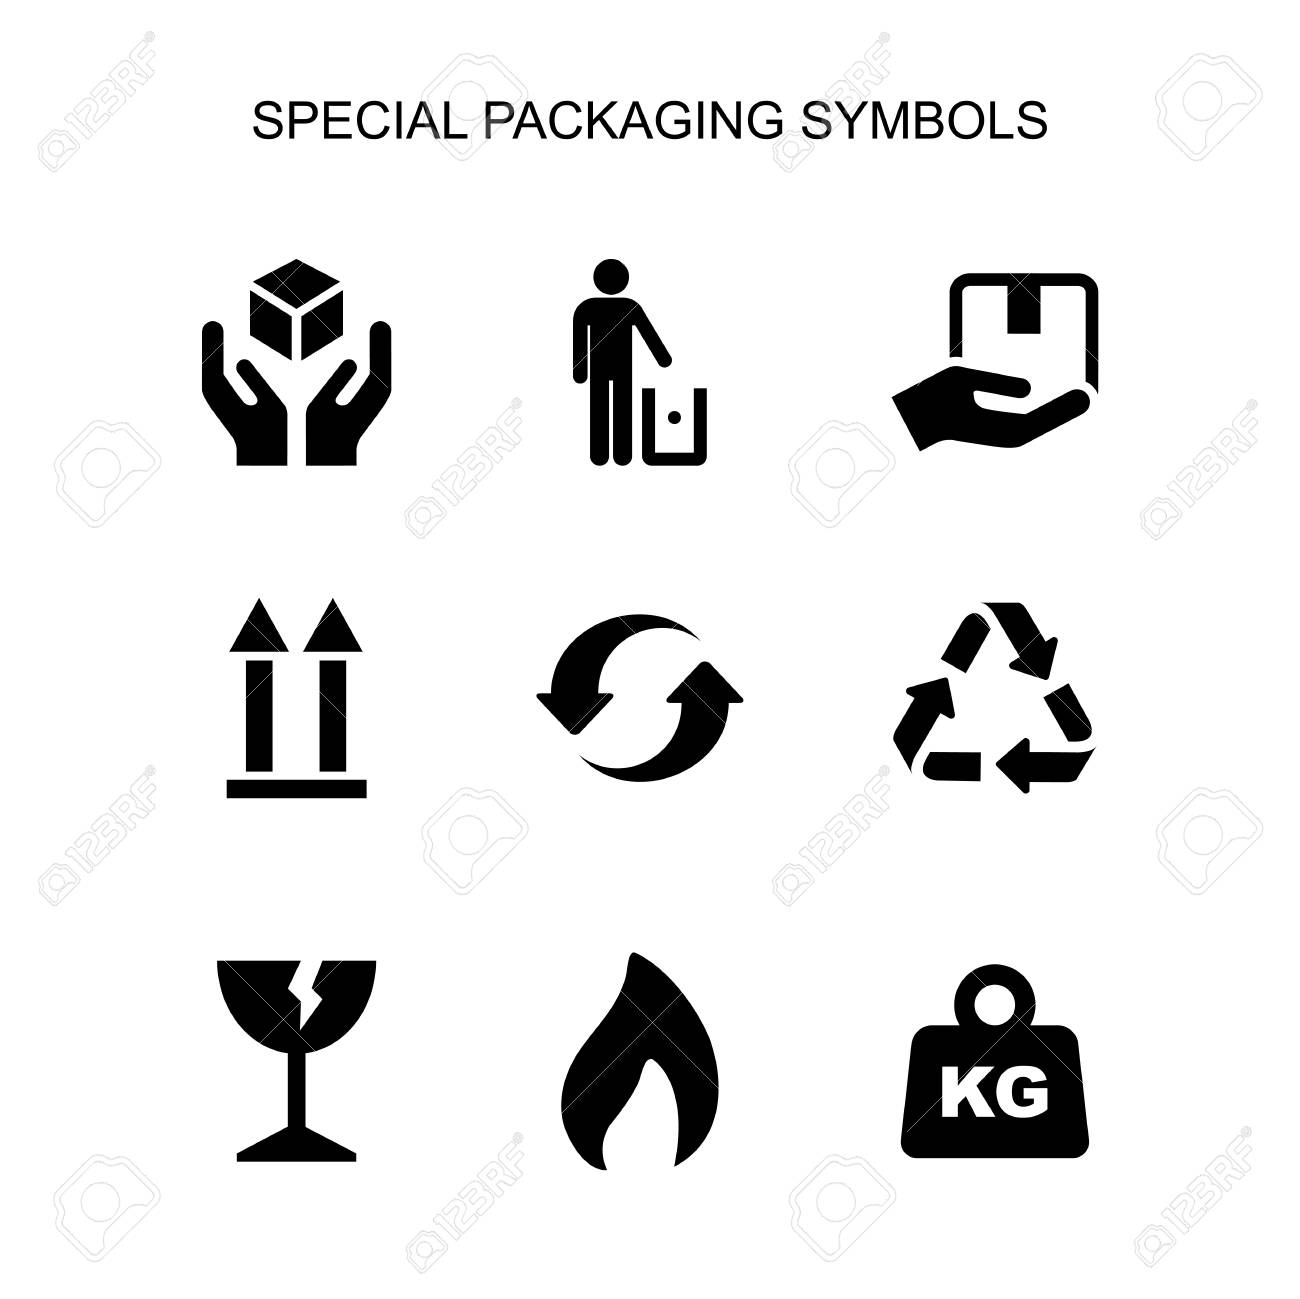 Packaging symbols set simple flat style icon isolated. - 120691942